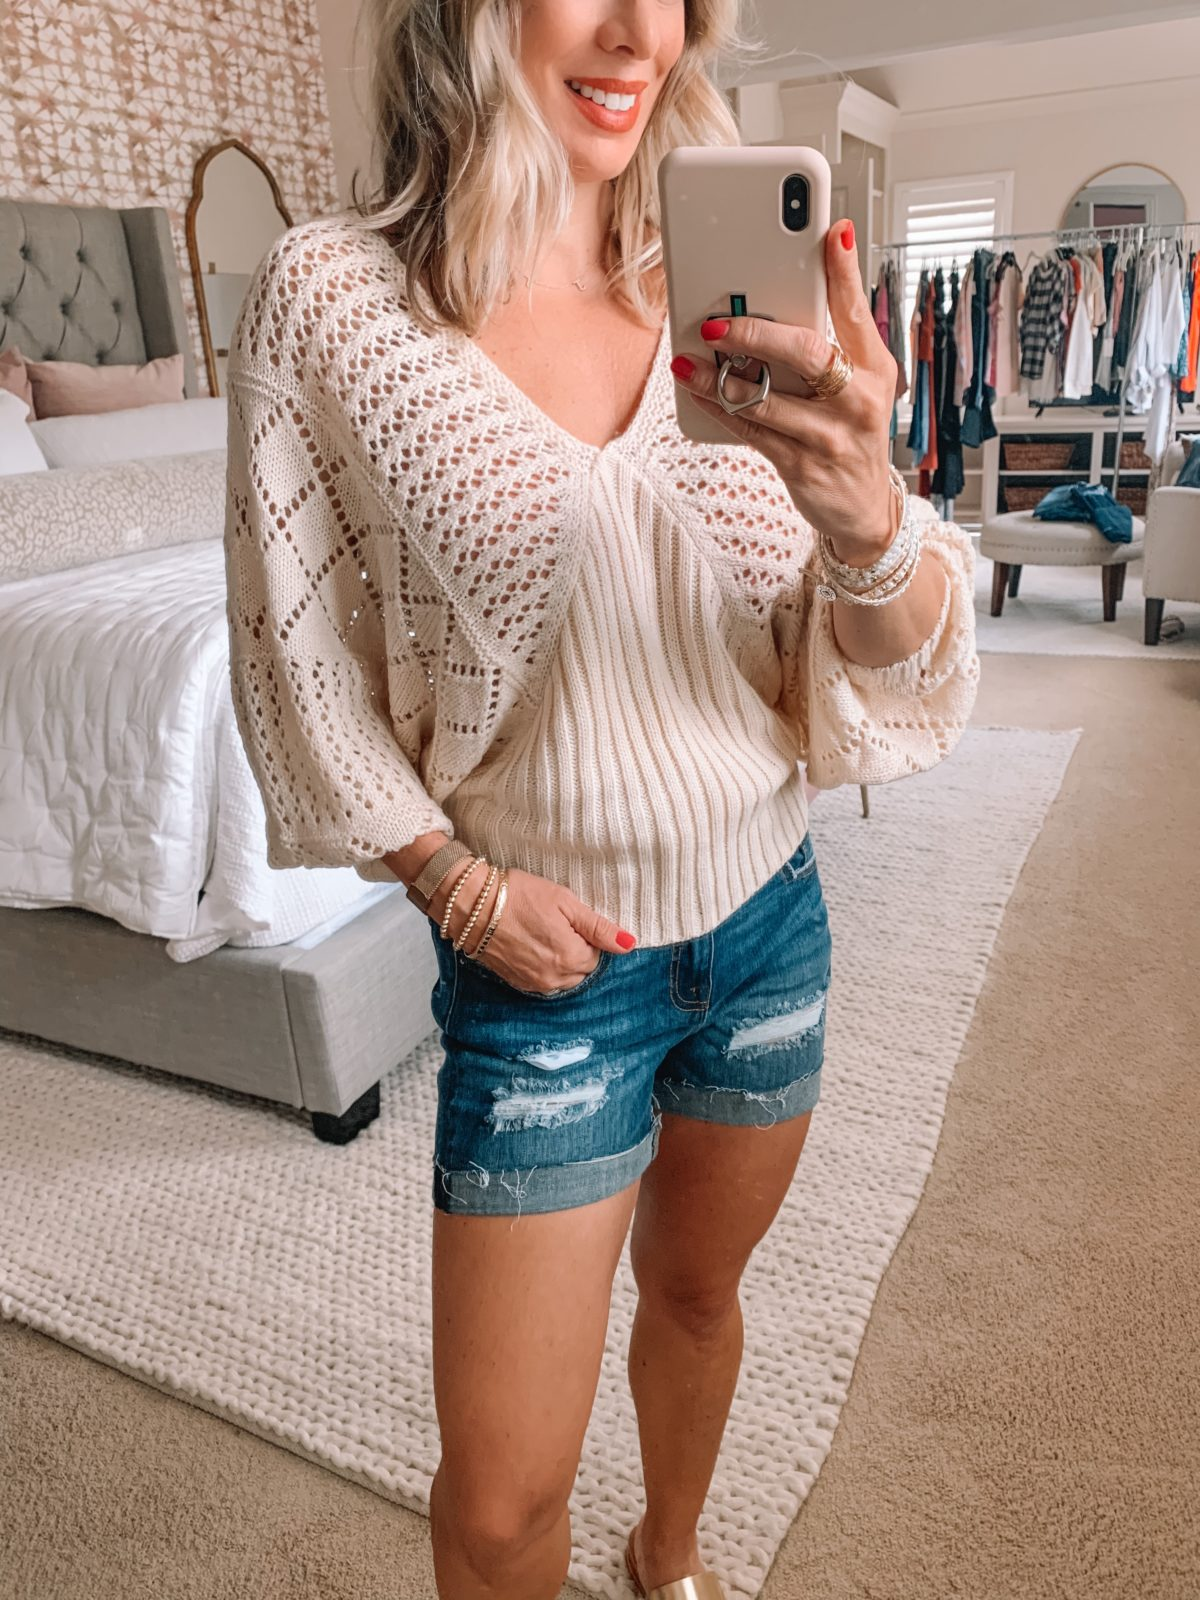 Dressing Room Finds Nordstrom and Target, Sweater, Denim Shorts, Gold Sandals